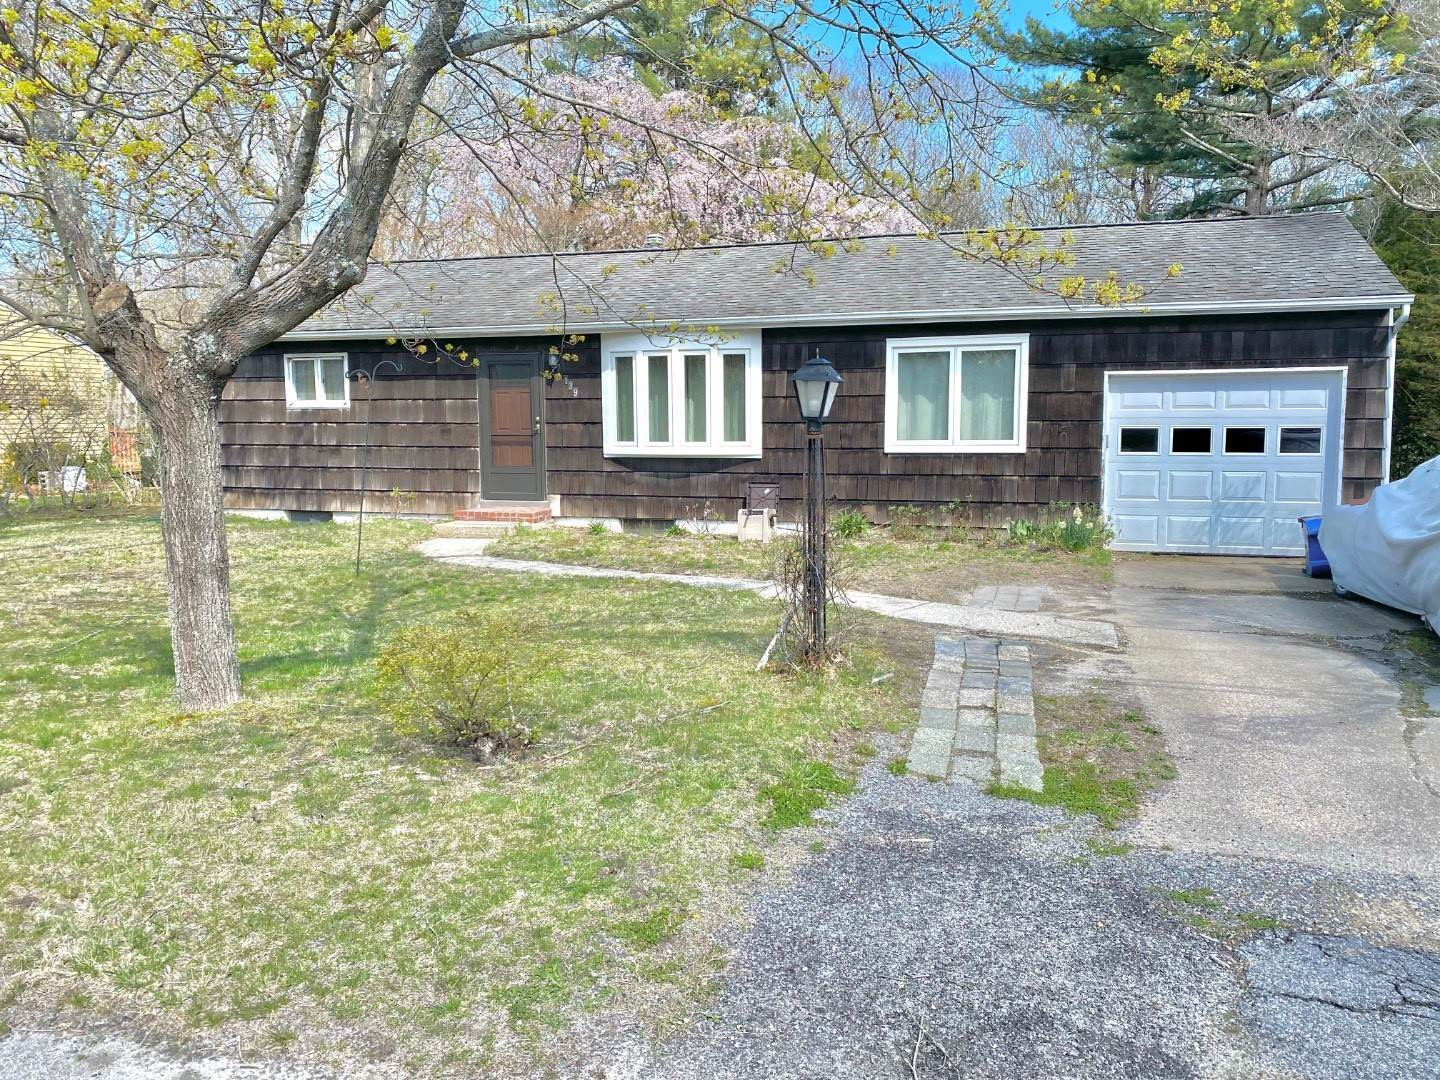 Single Family Home for Sale at Amazing Opportunity In East Quogue 139 Spinney Road, East Quogue, NY 11942